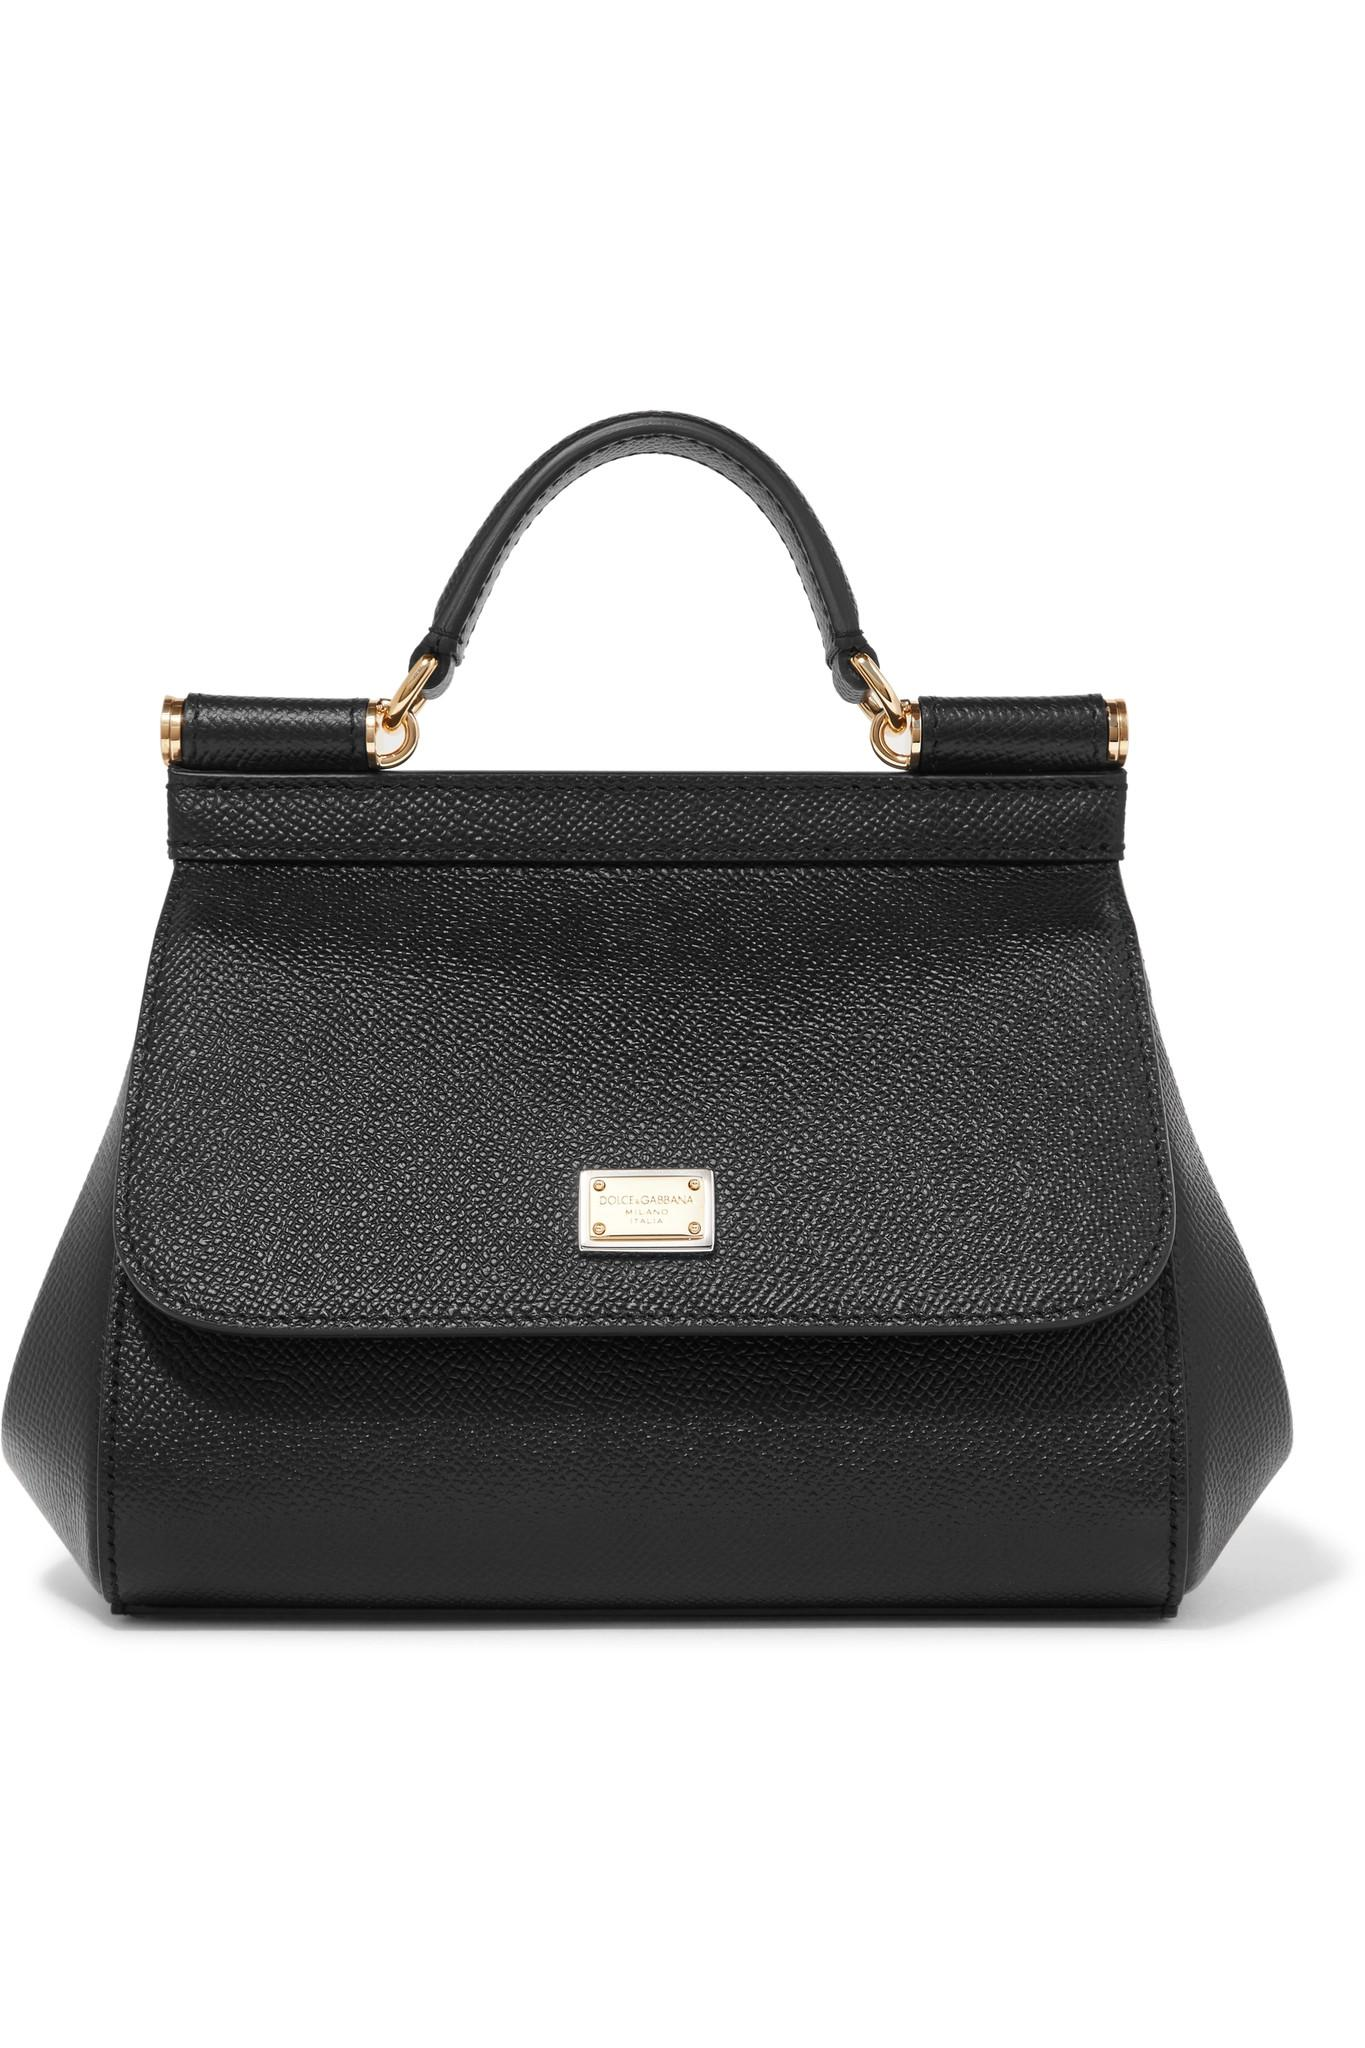 Dolce   Gabbana Sicily Micro Textured-leather Tote in Black - Lyst a63933eb3b824